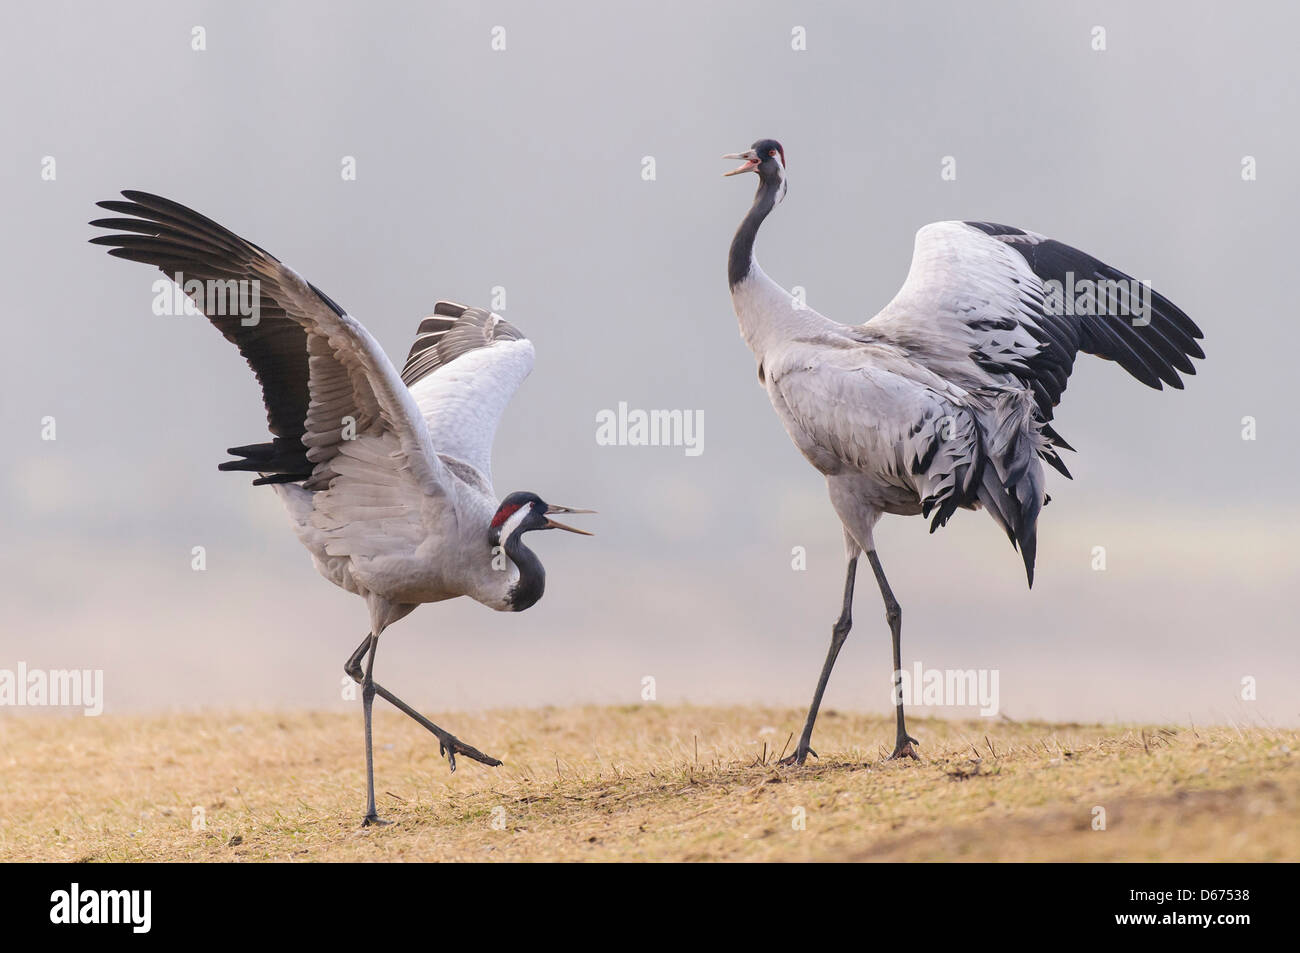 two cranes in mating season, grus grus, germany - Stock Image